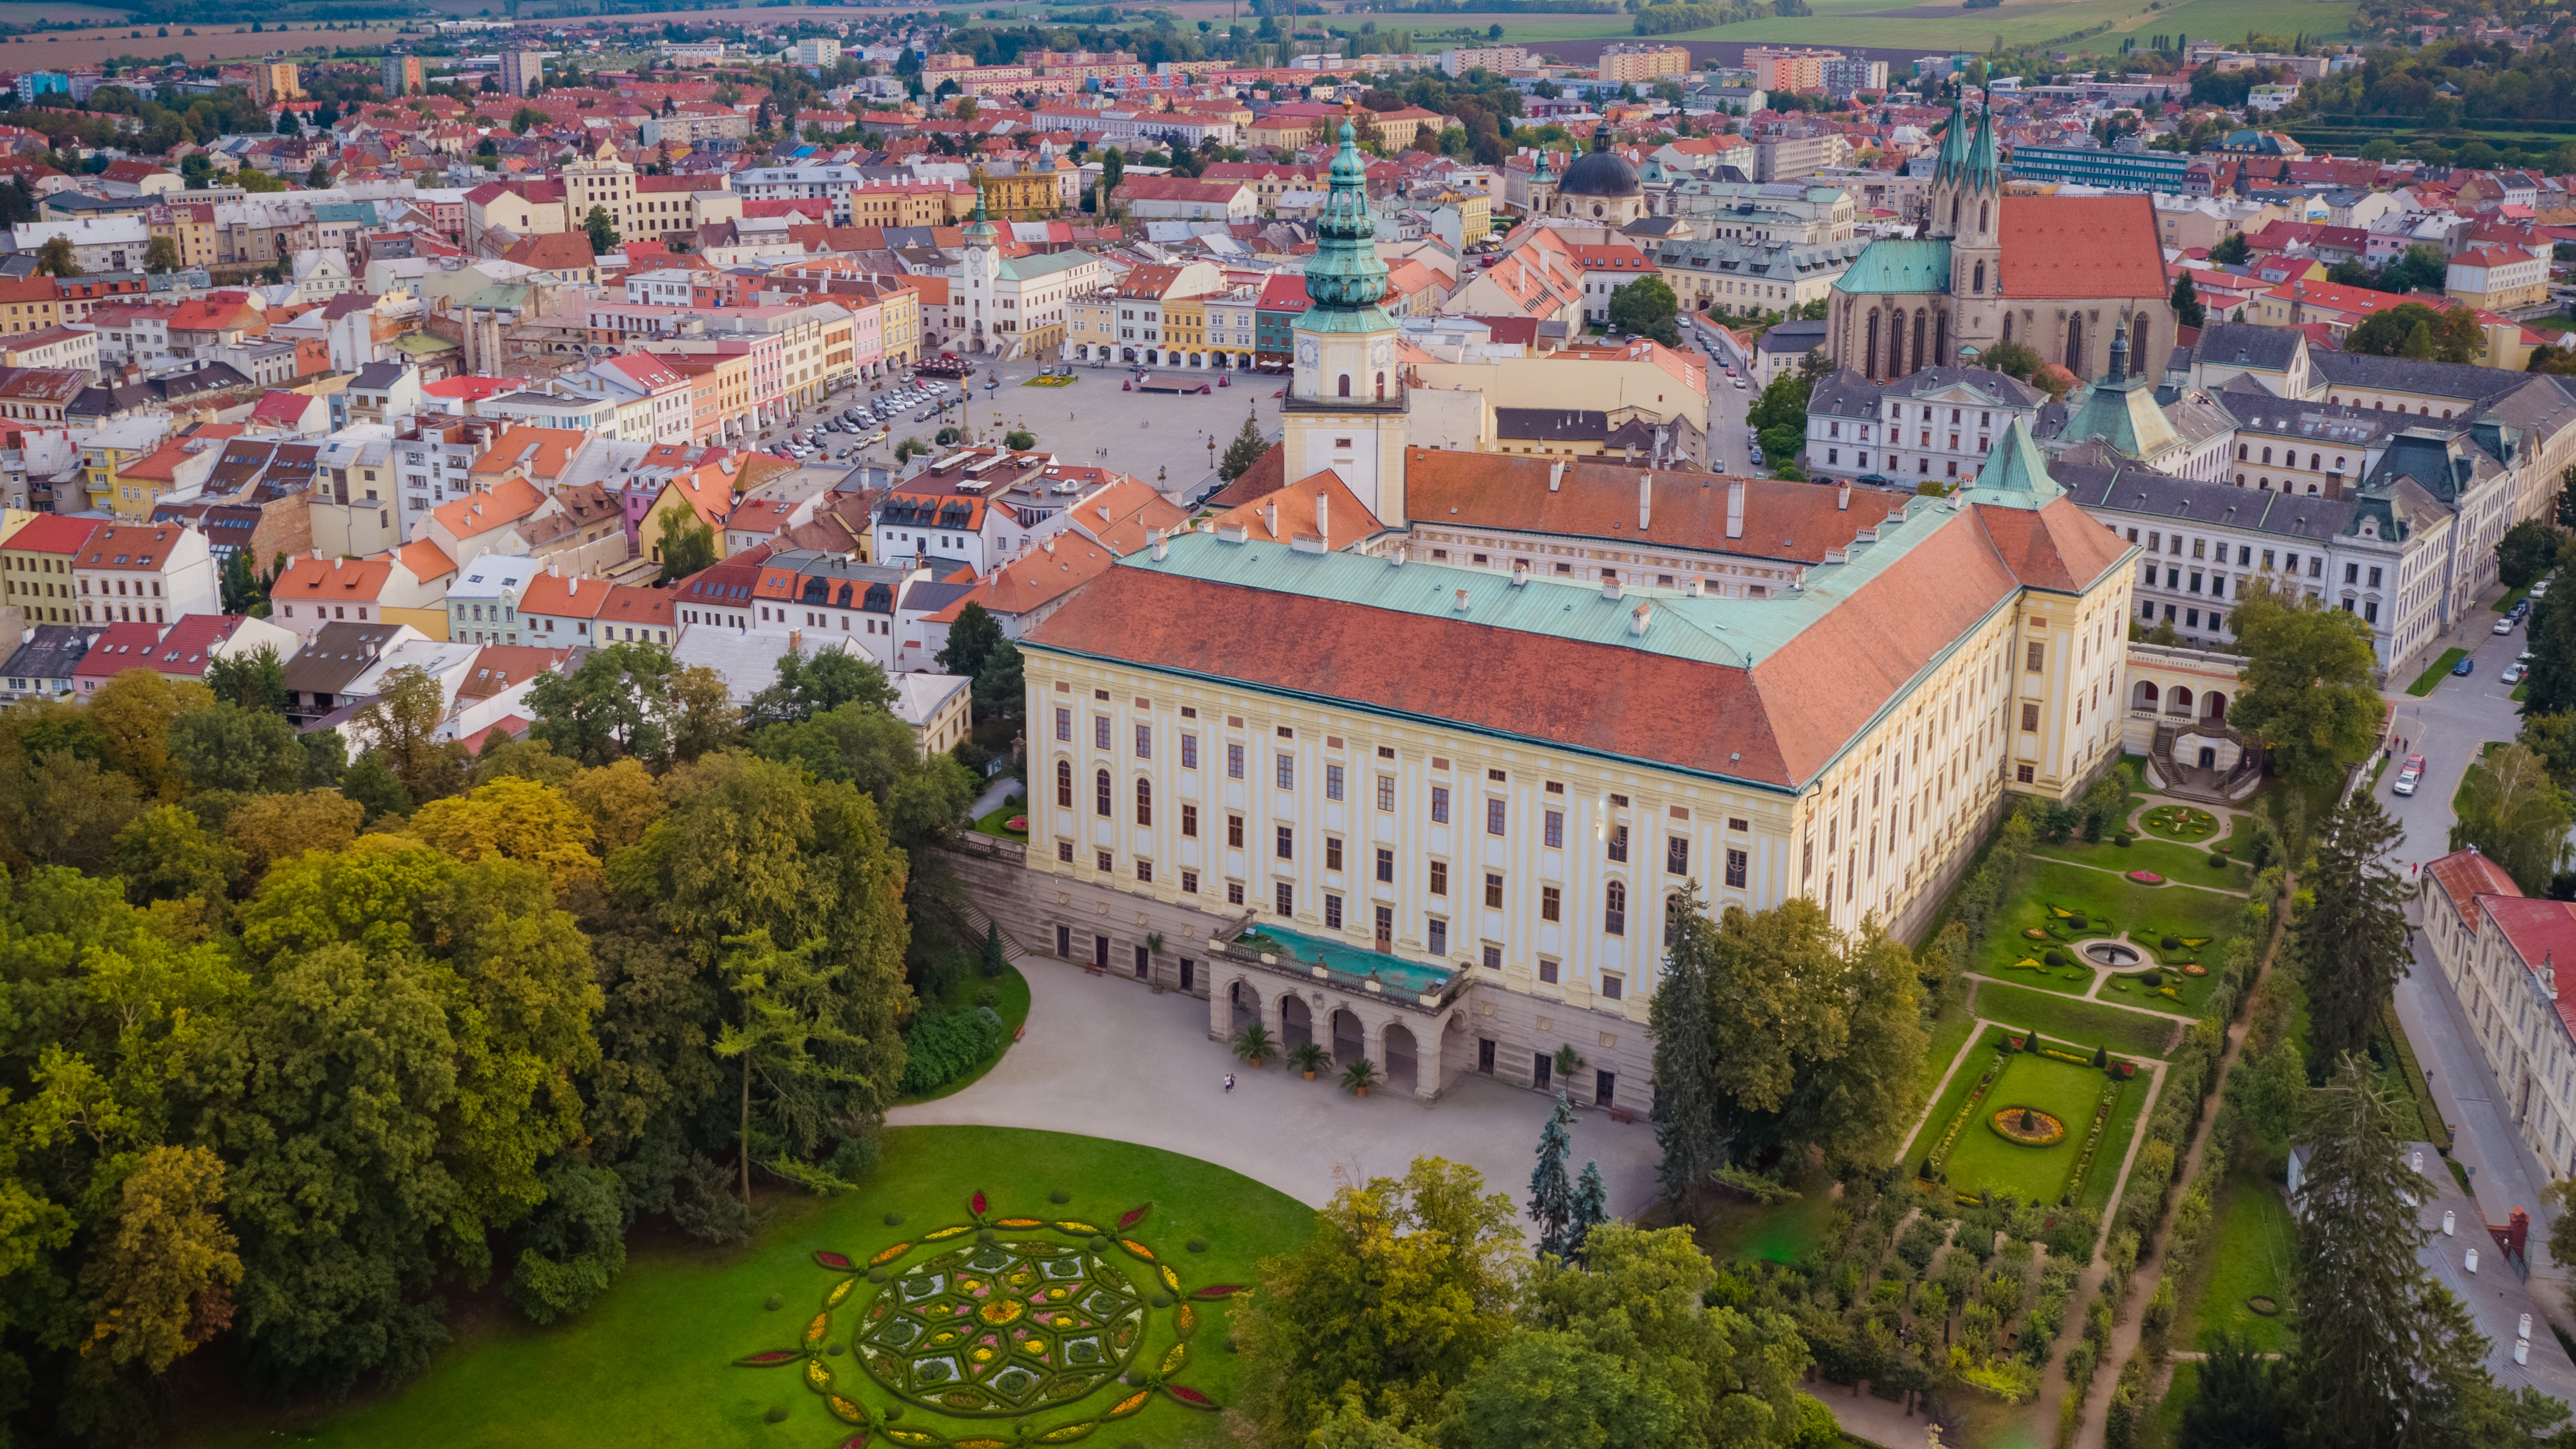 Today's appearance of the Archiepiscopal Castle dates to the 17th century, when Bishop Karl von Liechtenstein-Castelcorno renovated the building after the Thirty Year's War. Since then, the appearance of the Castle has changed only minimally. Today, the Castleand the Castle Garden dominate the entire town of Kroměříž. – © Archive of the Archiepiscopal Castle Kroměříž